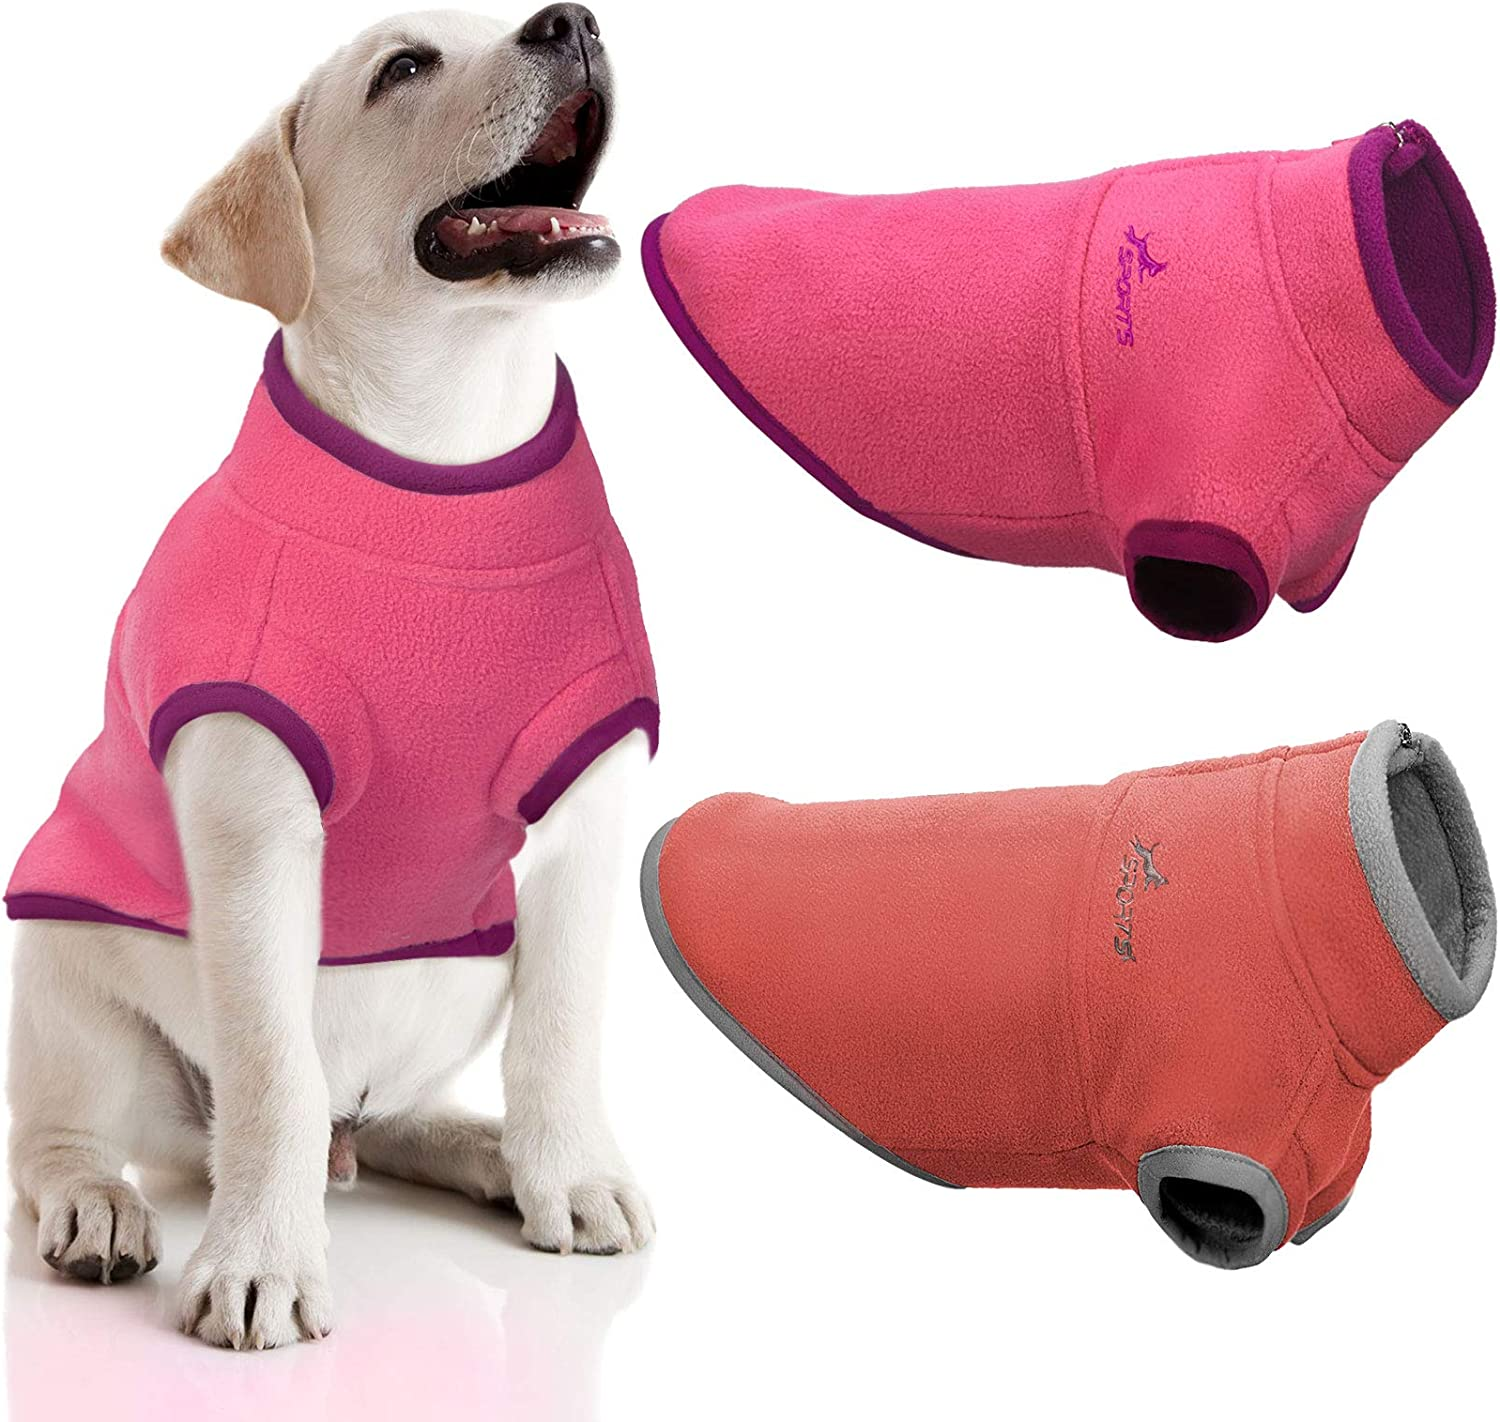 2 Pieces Fleece Dog We OFFer at cheap prices Sweaters Half Popularity Pullover Coat D Zip Puppy Warm